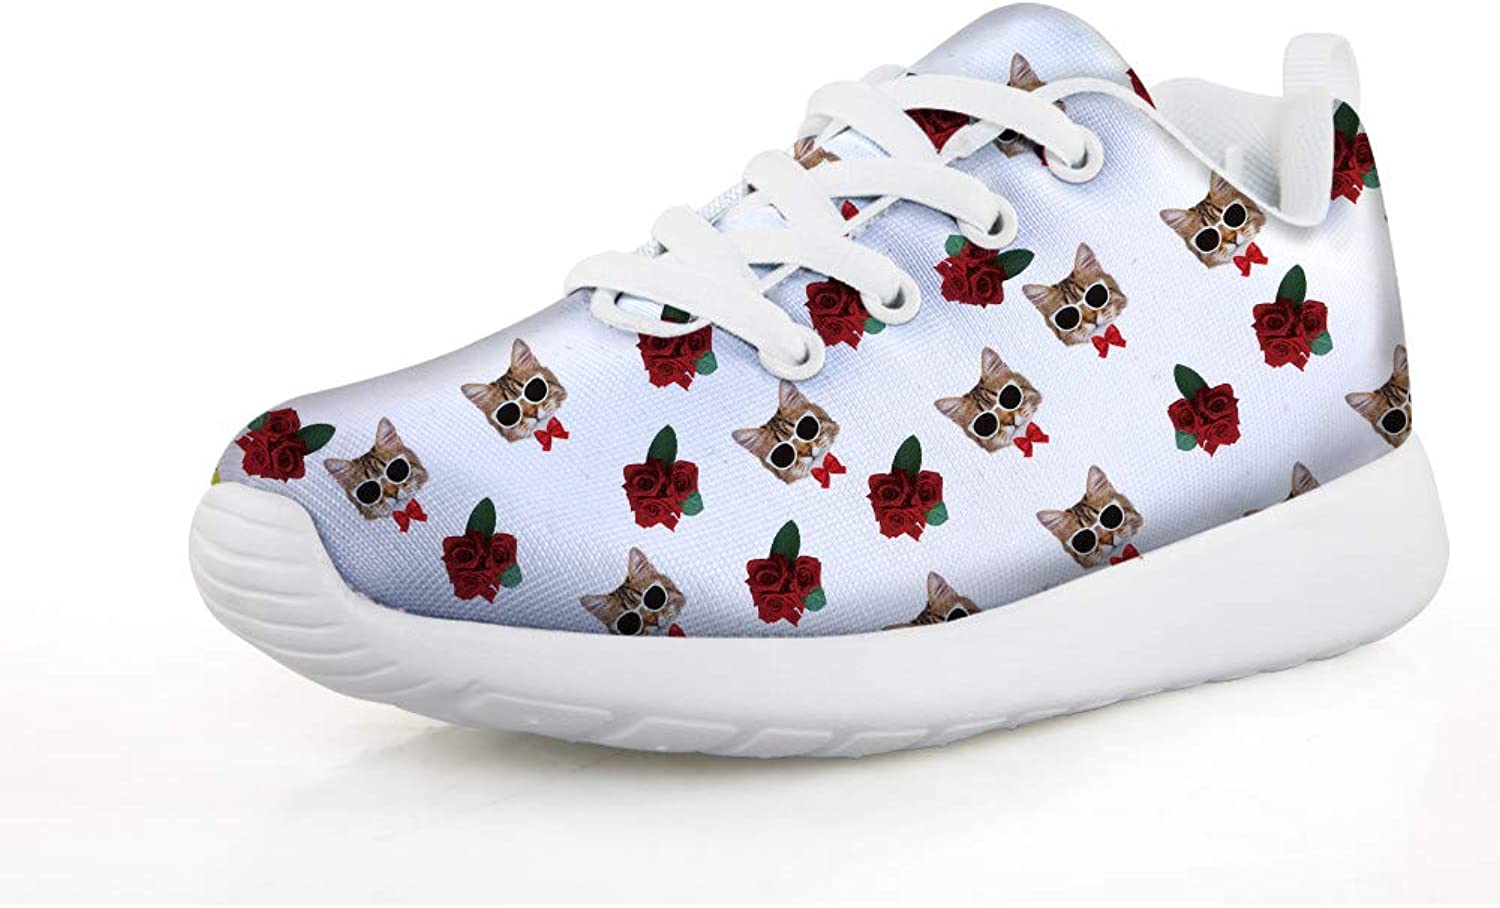 Chaqlin Fashion Sneakers Outdoor Kids shoes for College Footwear Cute Kitten Designer Multi colord Gift